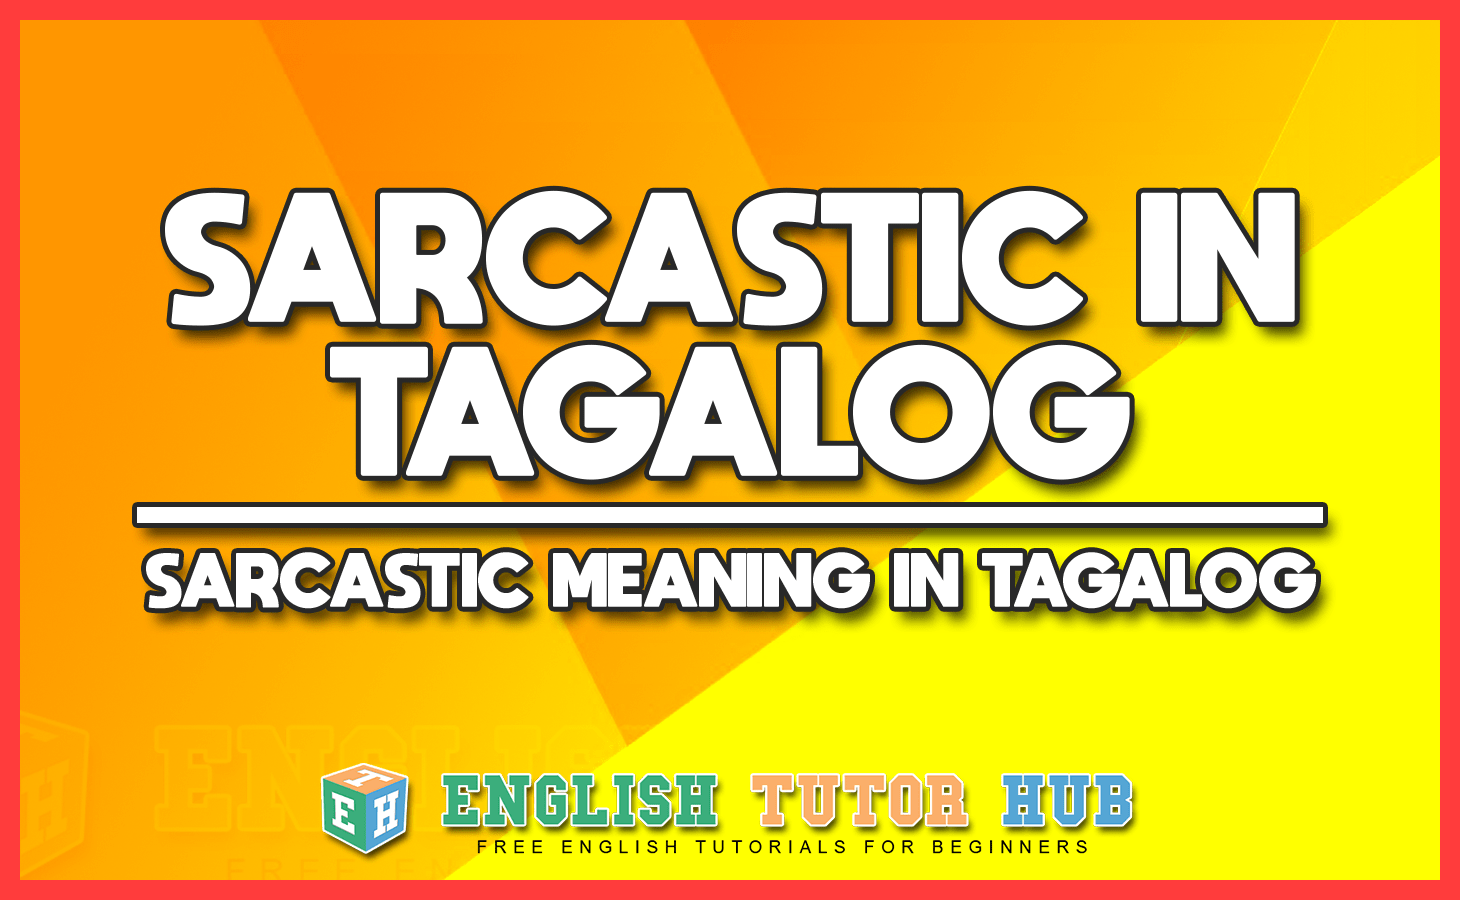 Sarcastic In Tagalog - Sarcastic Meaning In Tagalog